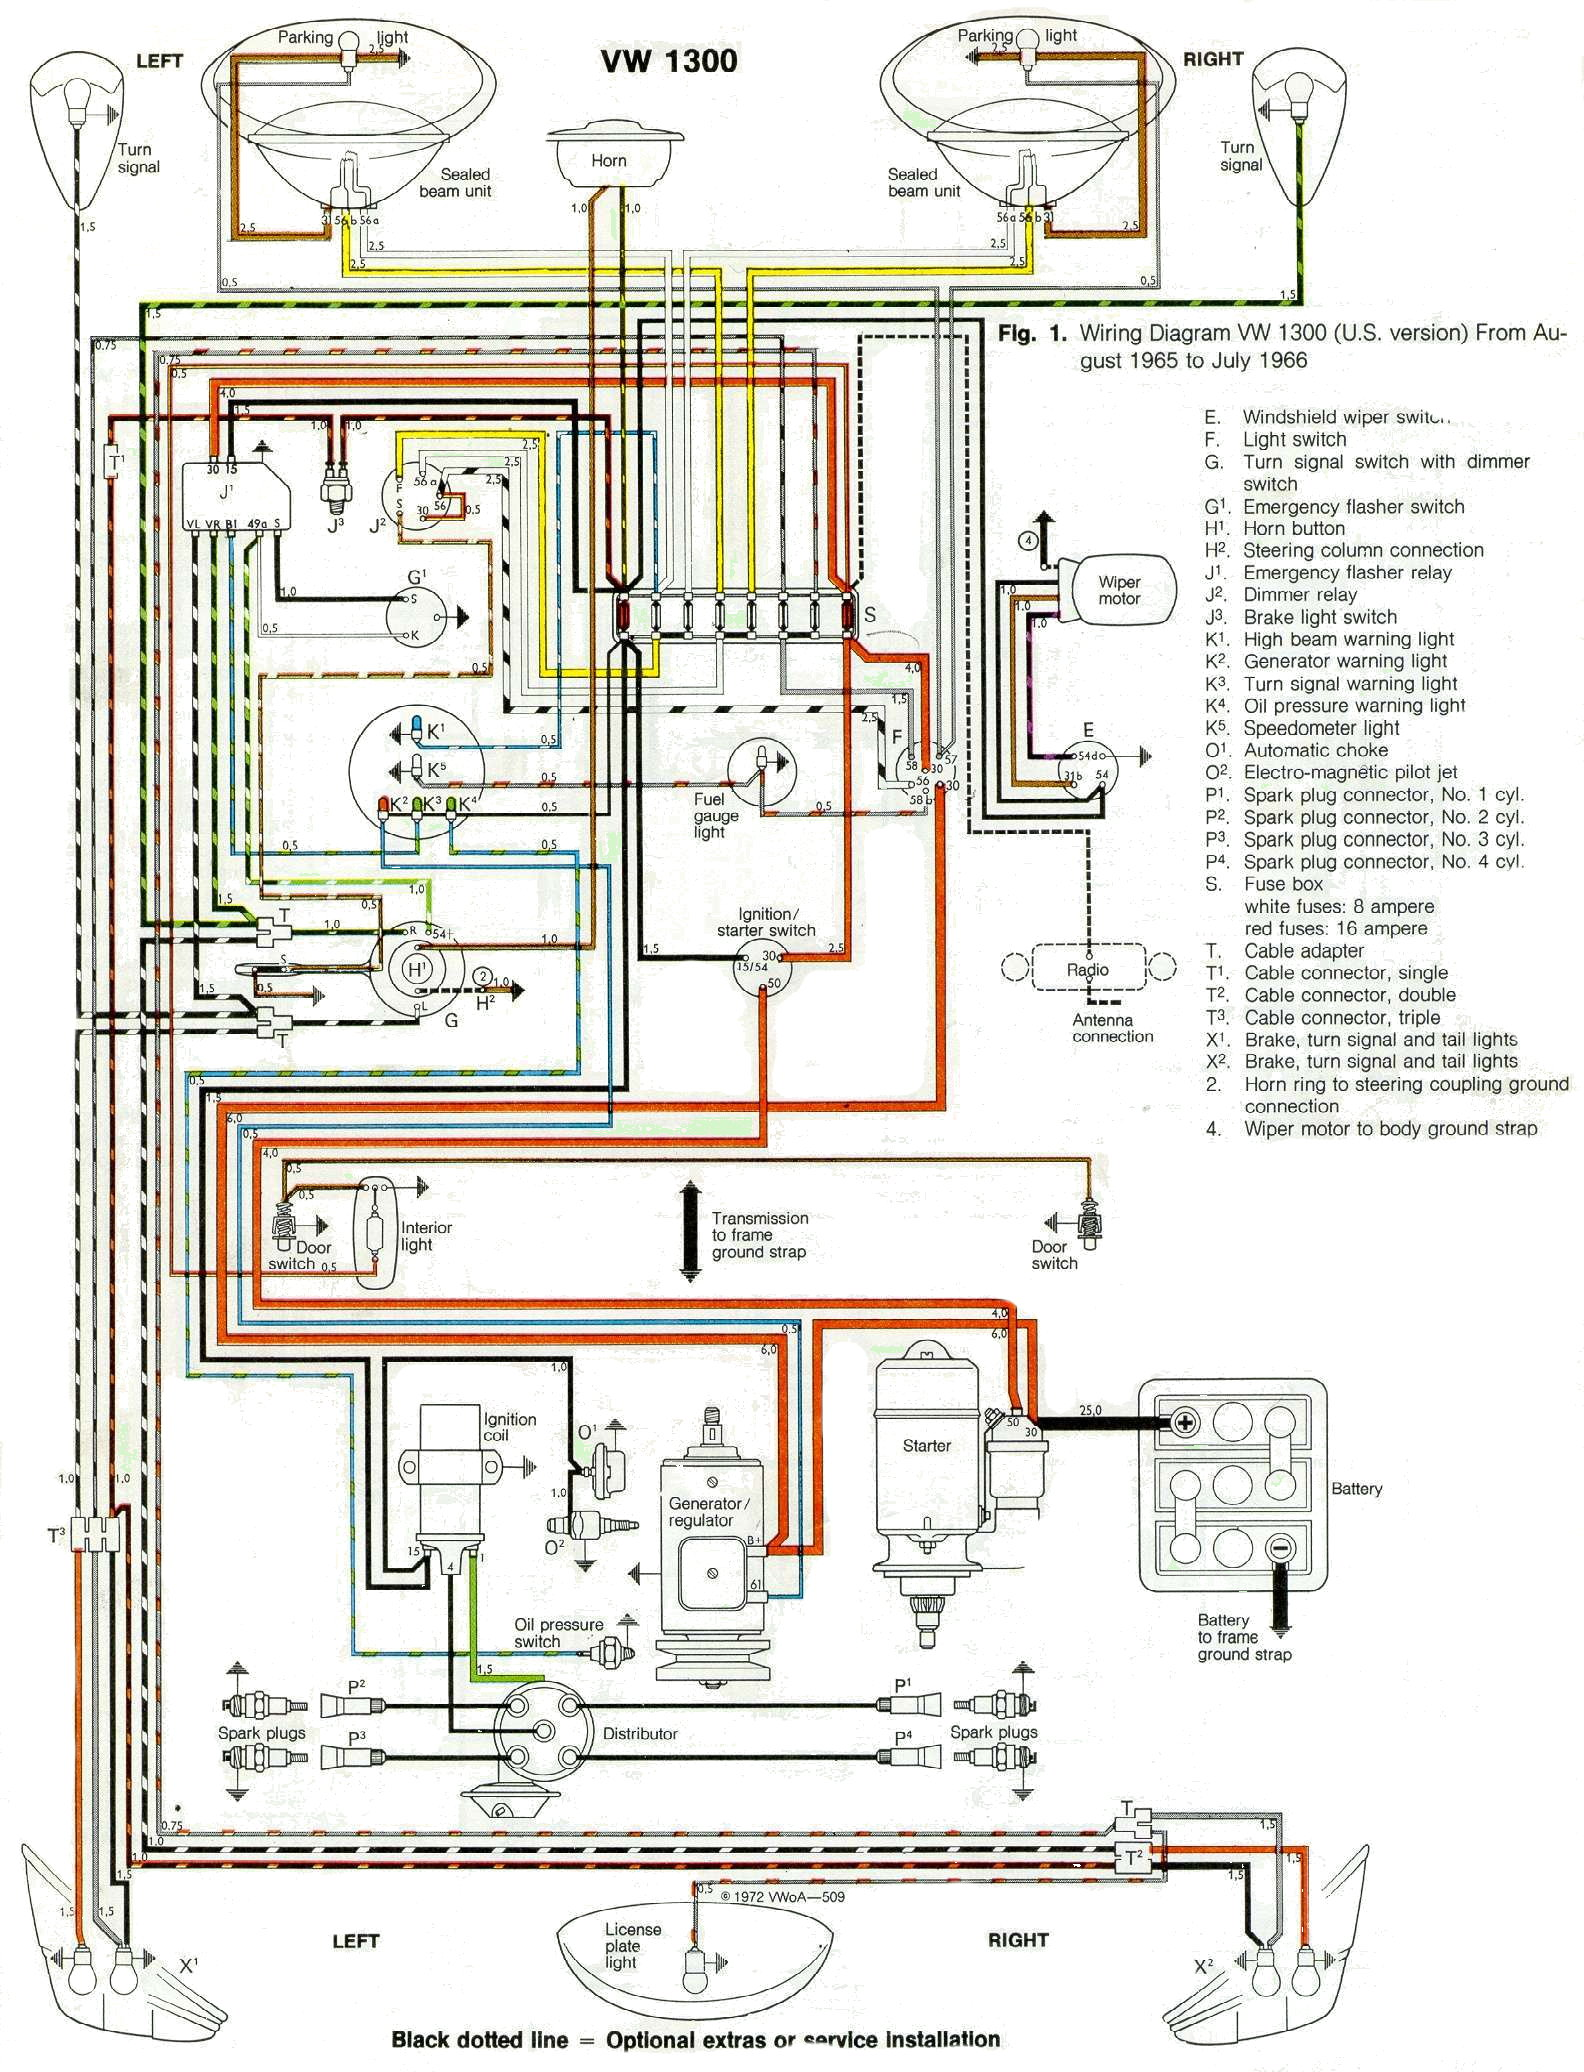 1966 Wiring 1966 wiring diagram vw bug wiring diagram at bayanpartner.co